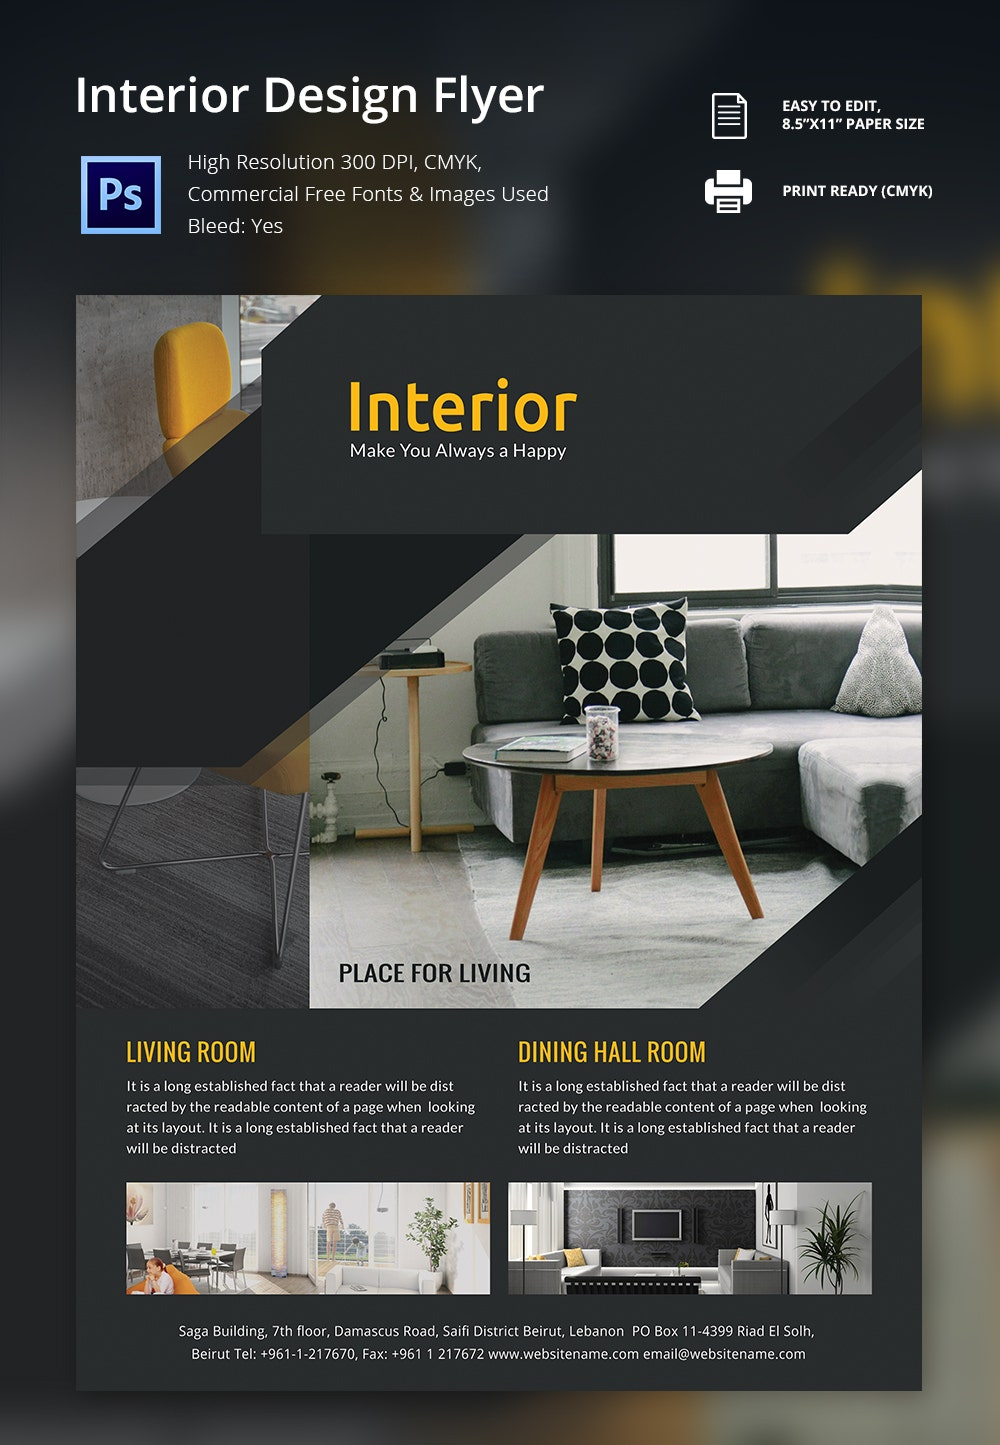 Interior design flyer template 25 free psd ai vector for Interior design photos free download